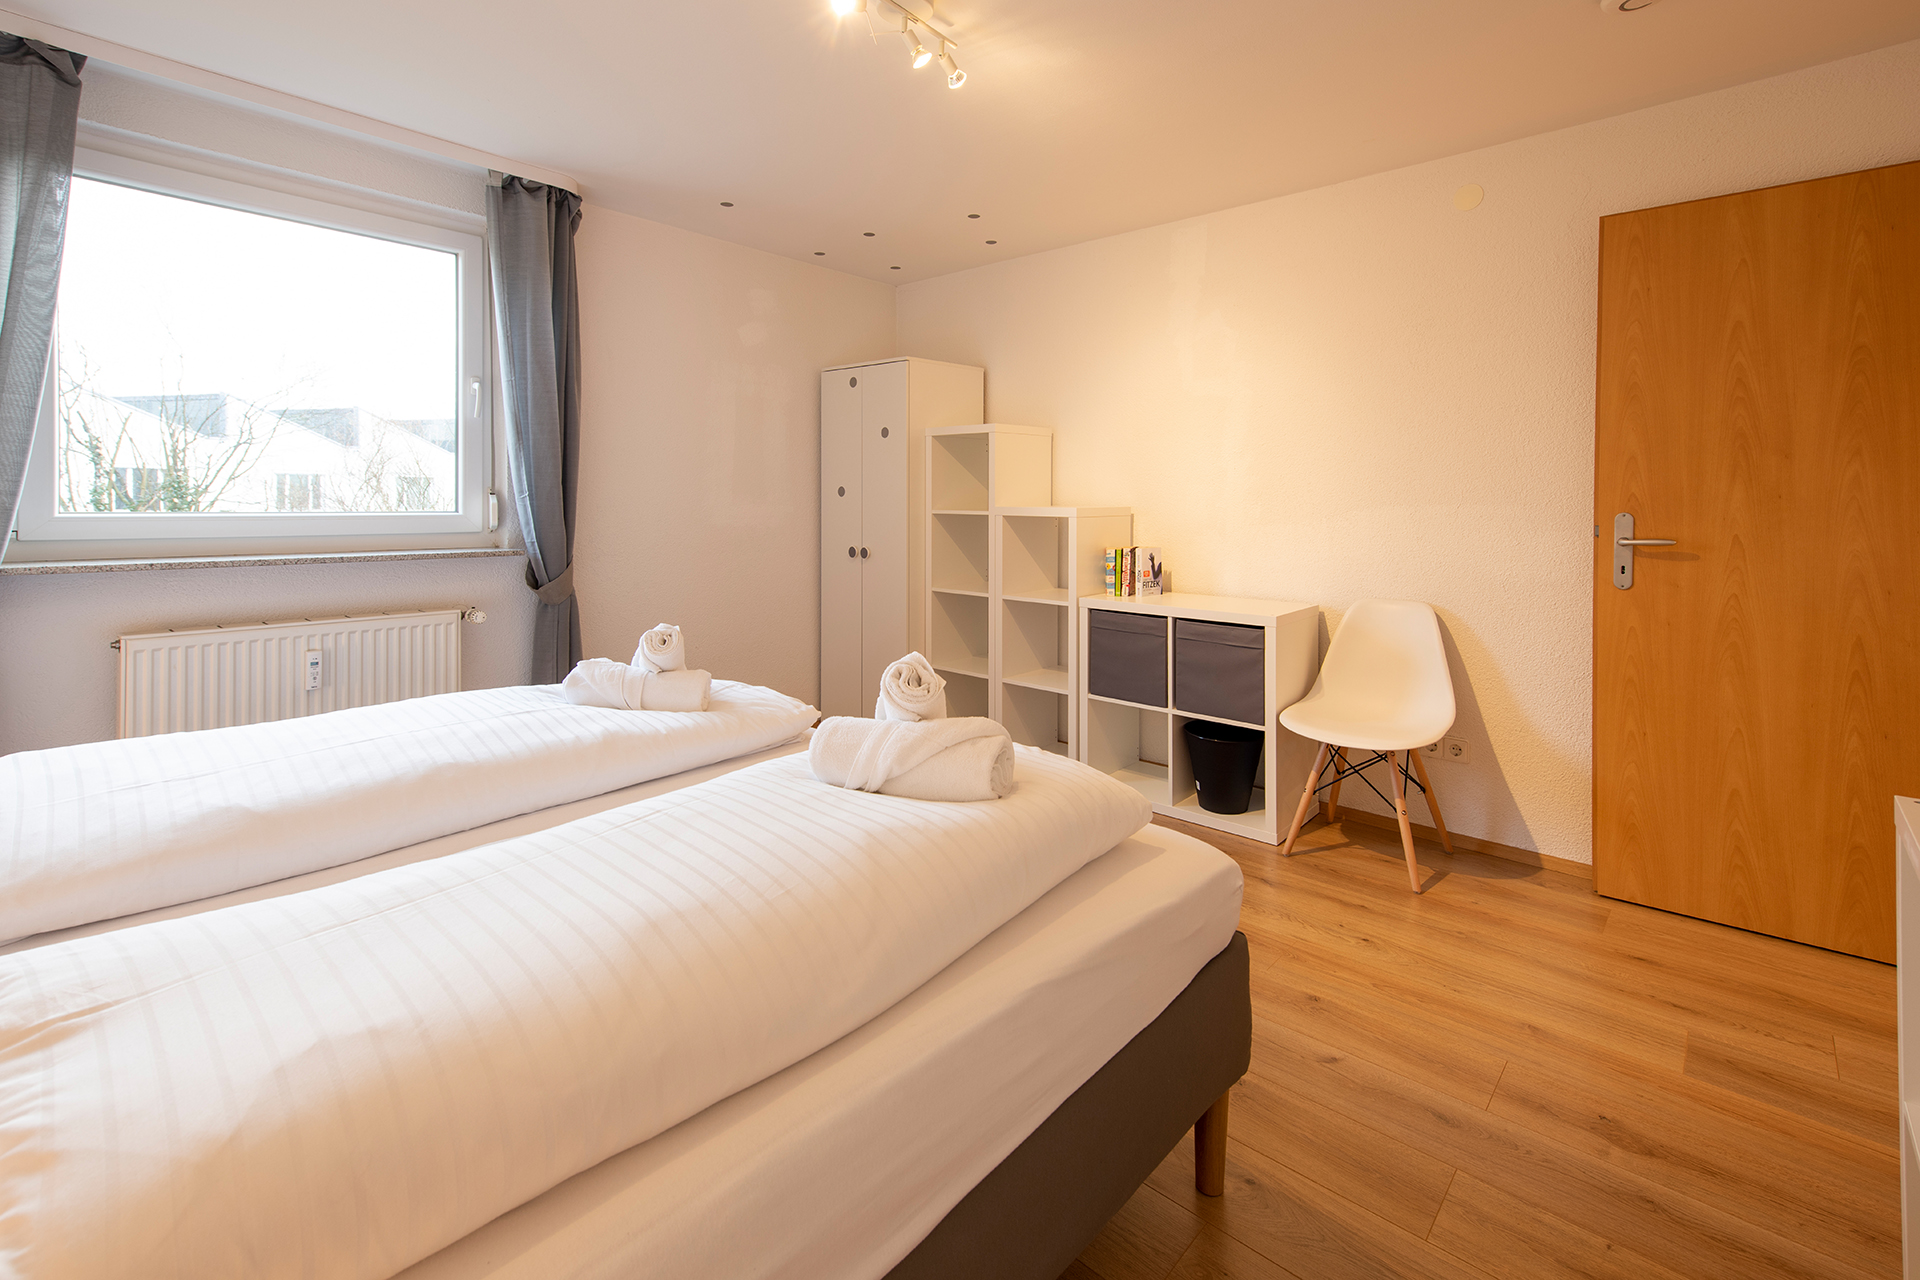 Holiday apartments on Lake Constance: Markdorf - Bedroom 3